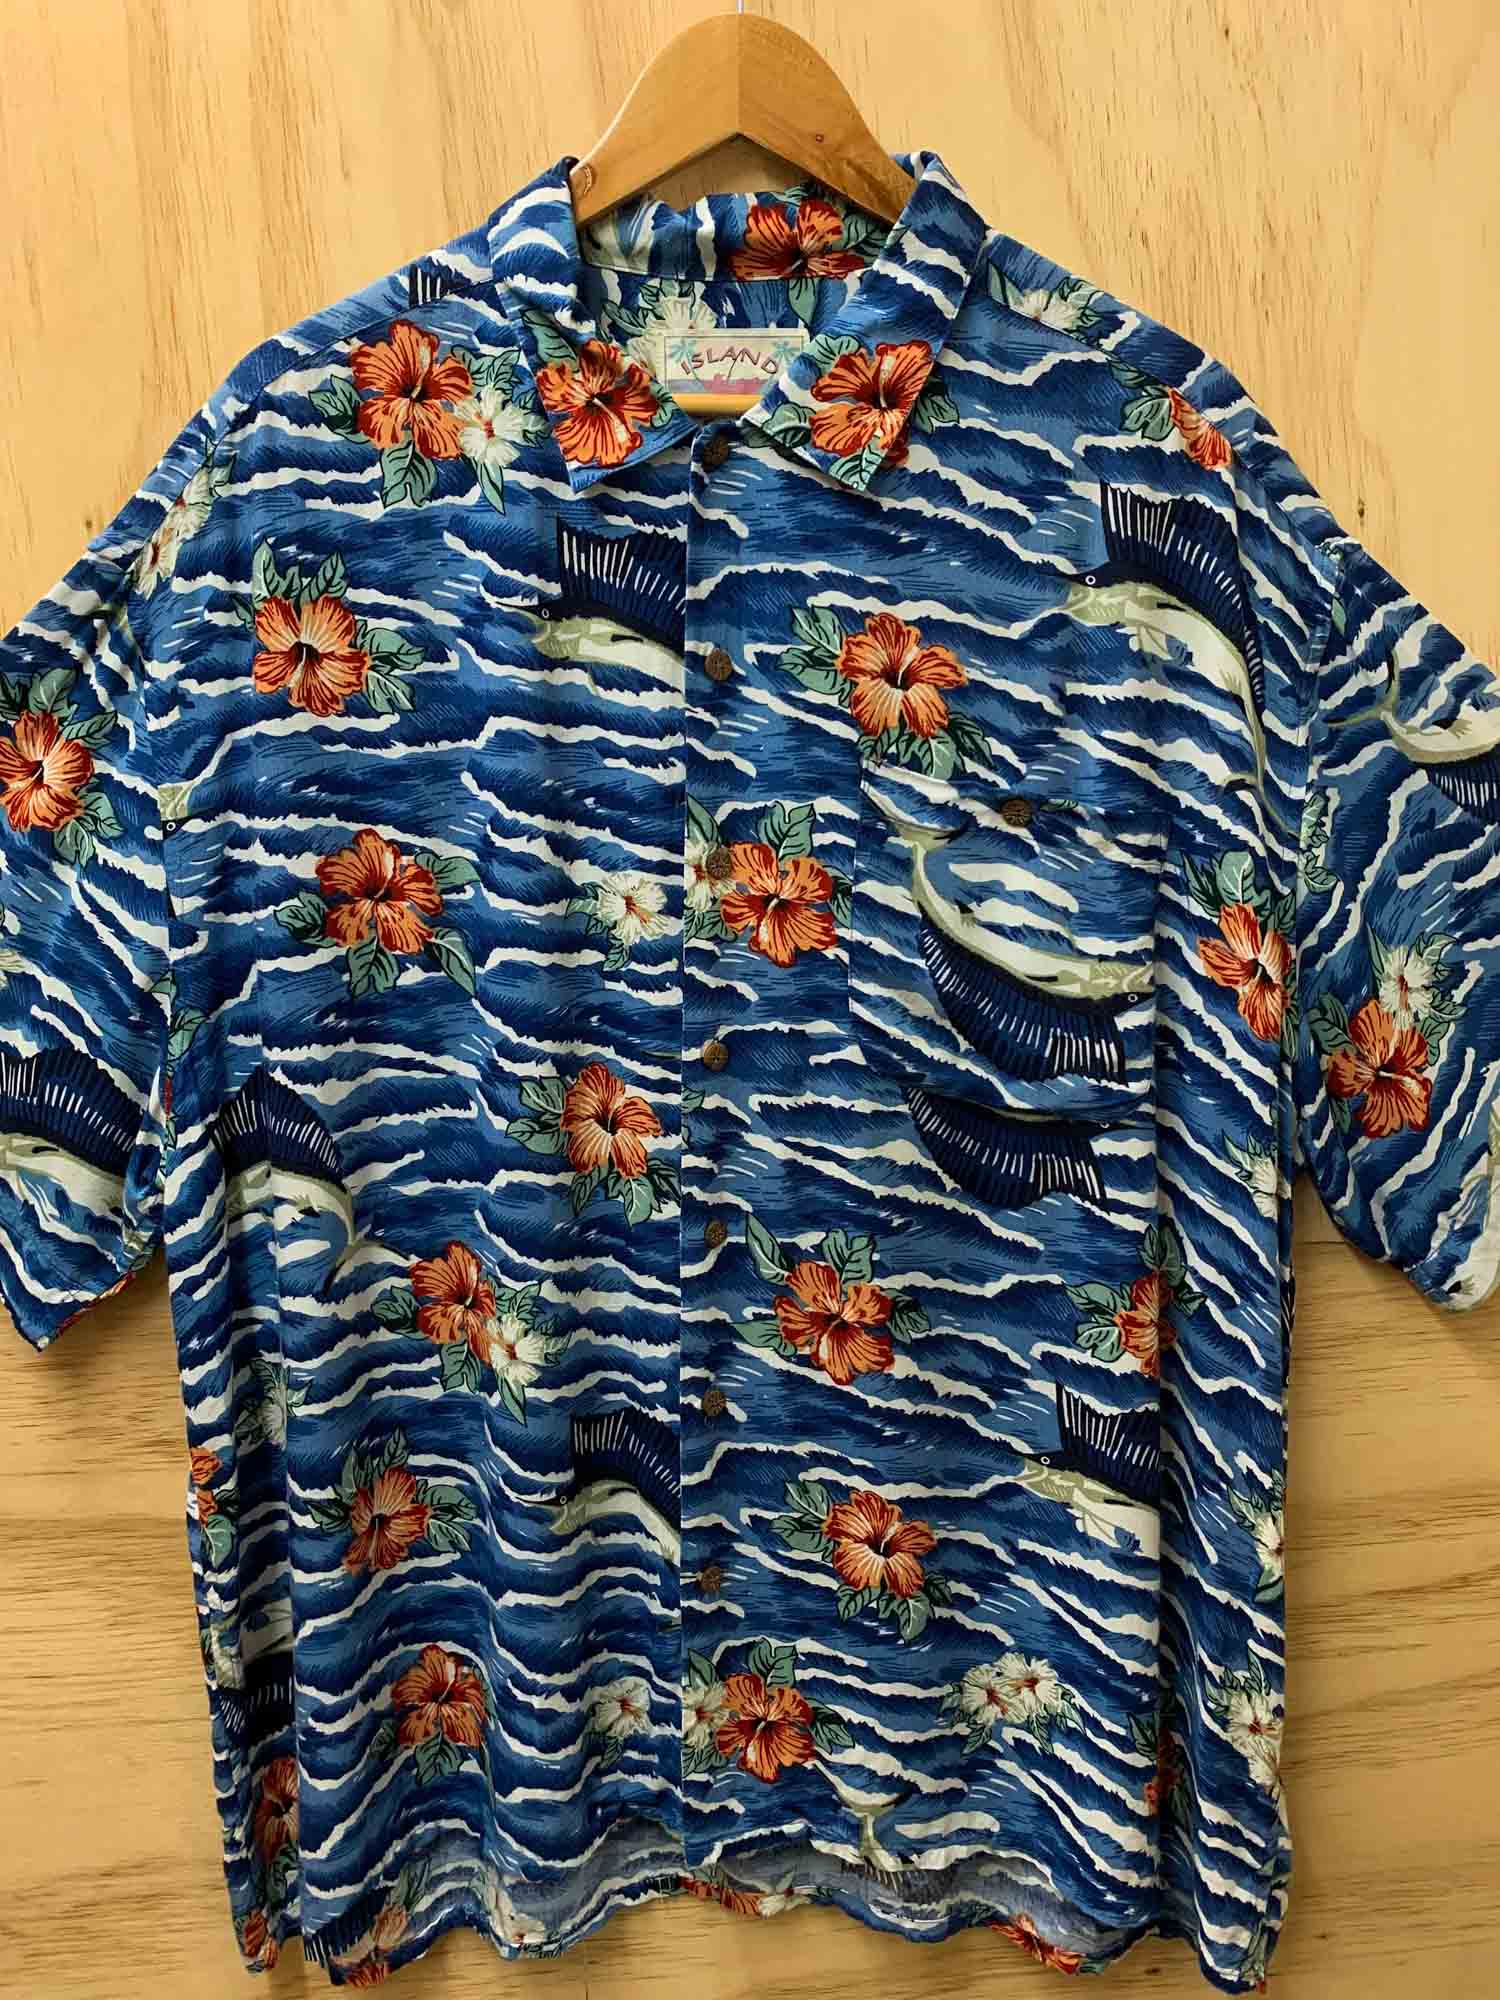 VINTAGE RESORT SHIRT